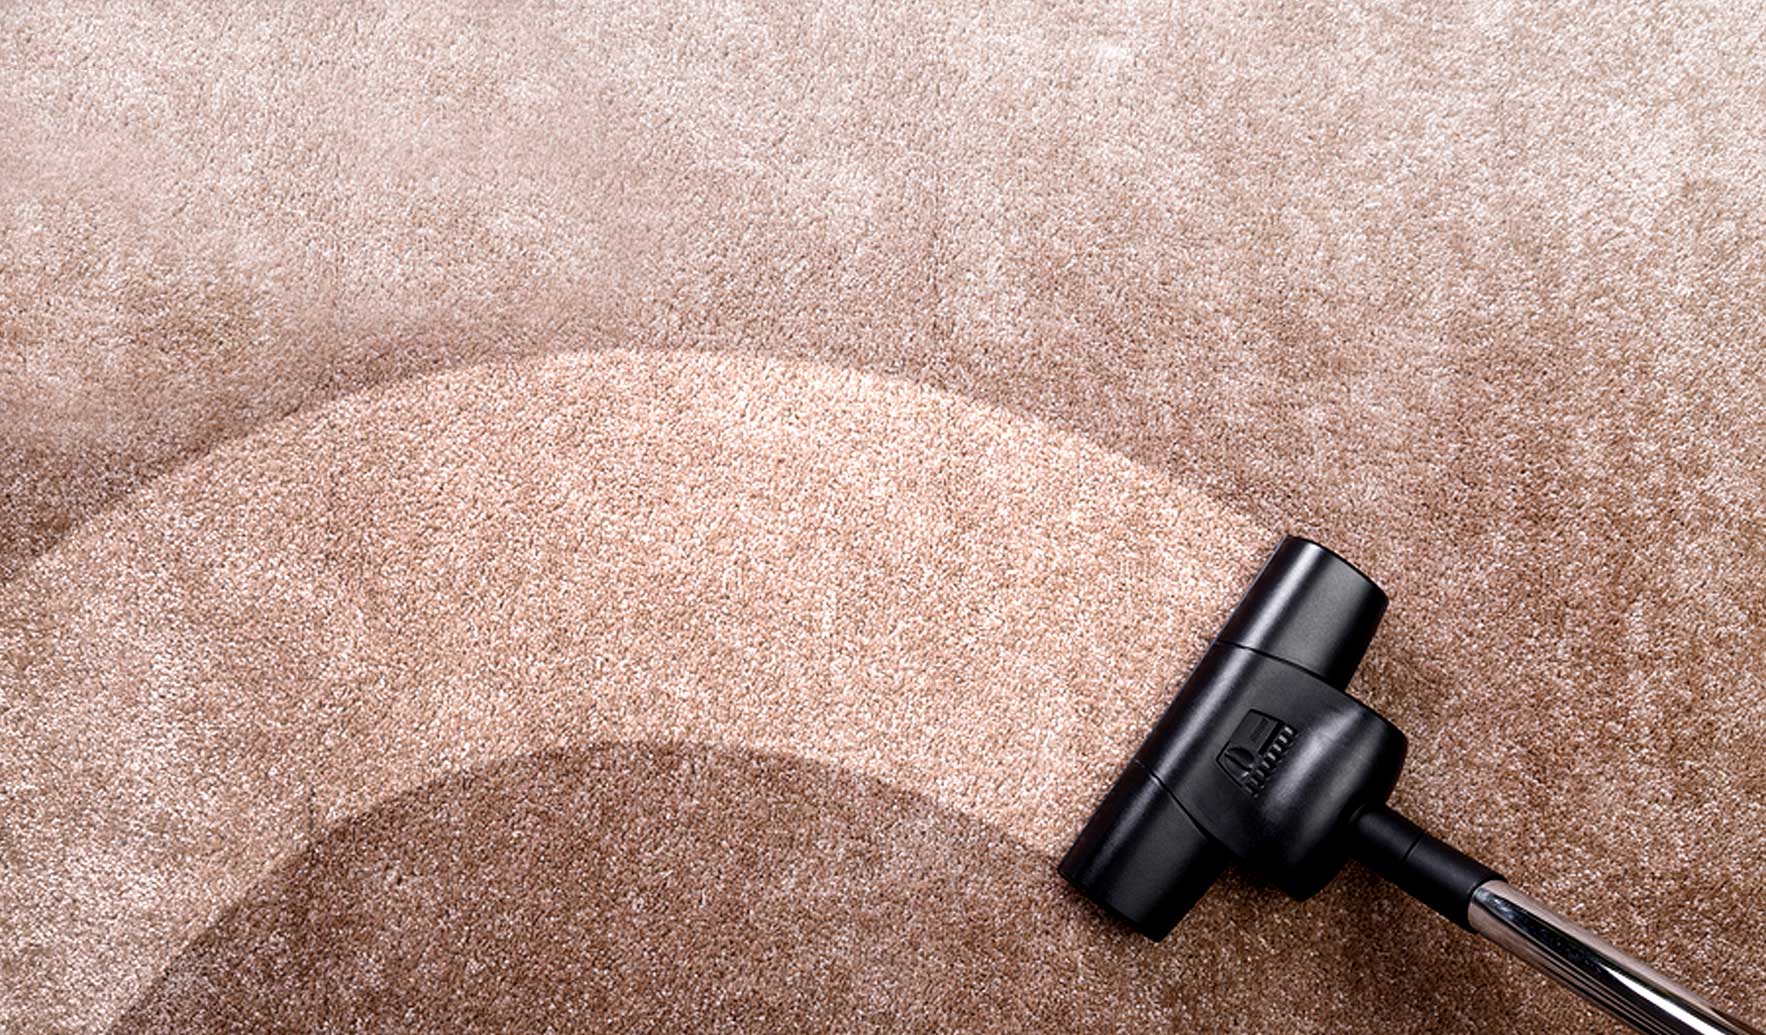 Carpet Cleaning Superior Carpet Cleaning Service Evansville Indiana S 1 Carpet